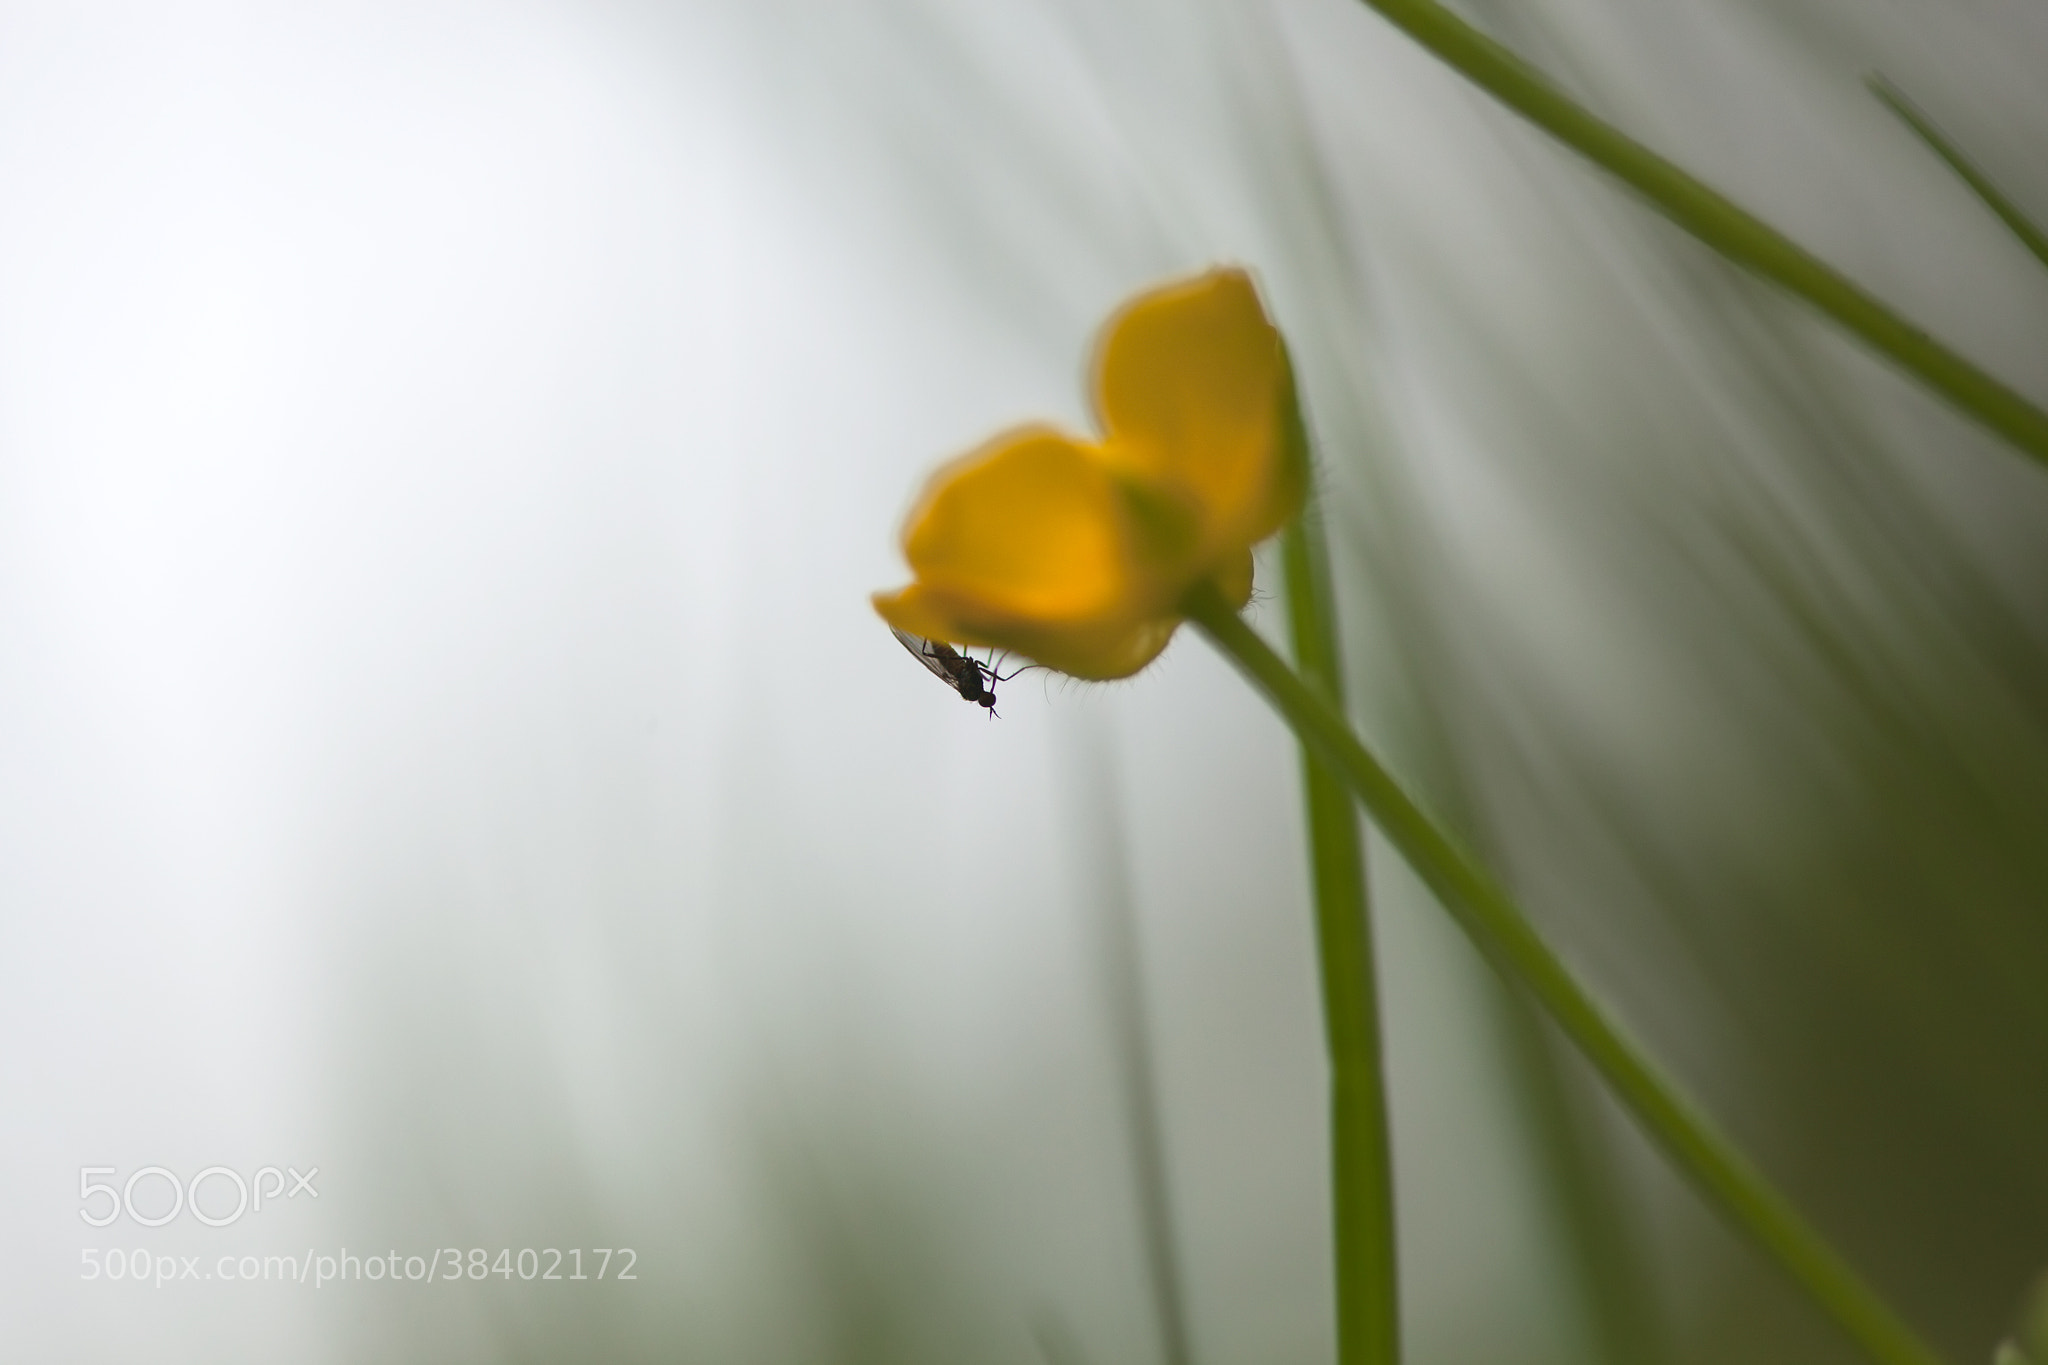 Photograph The small creatures world by Tone Sundland on 500px